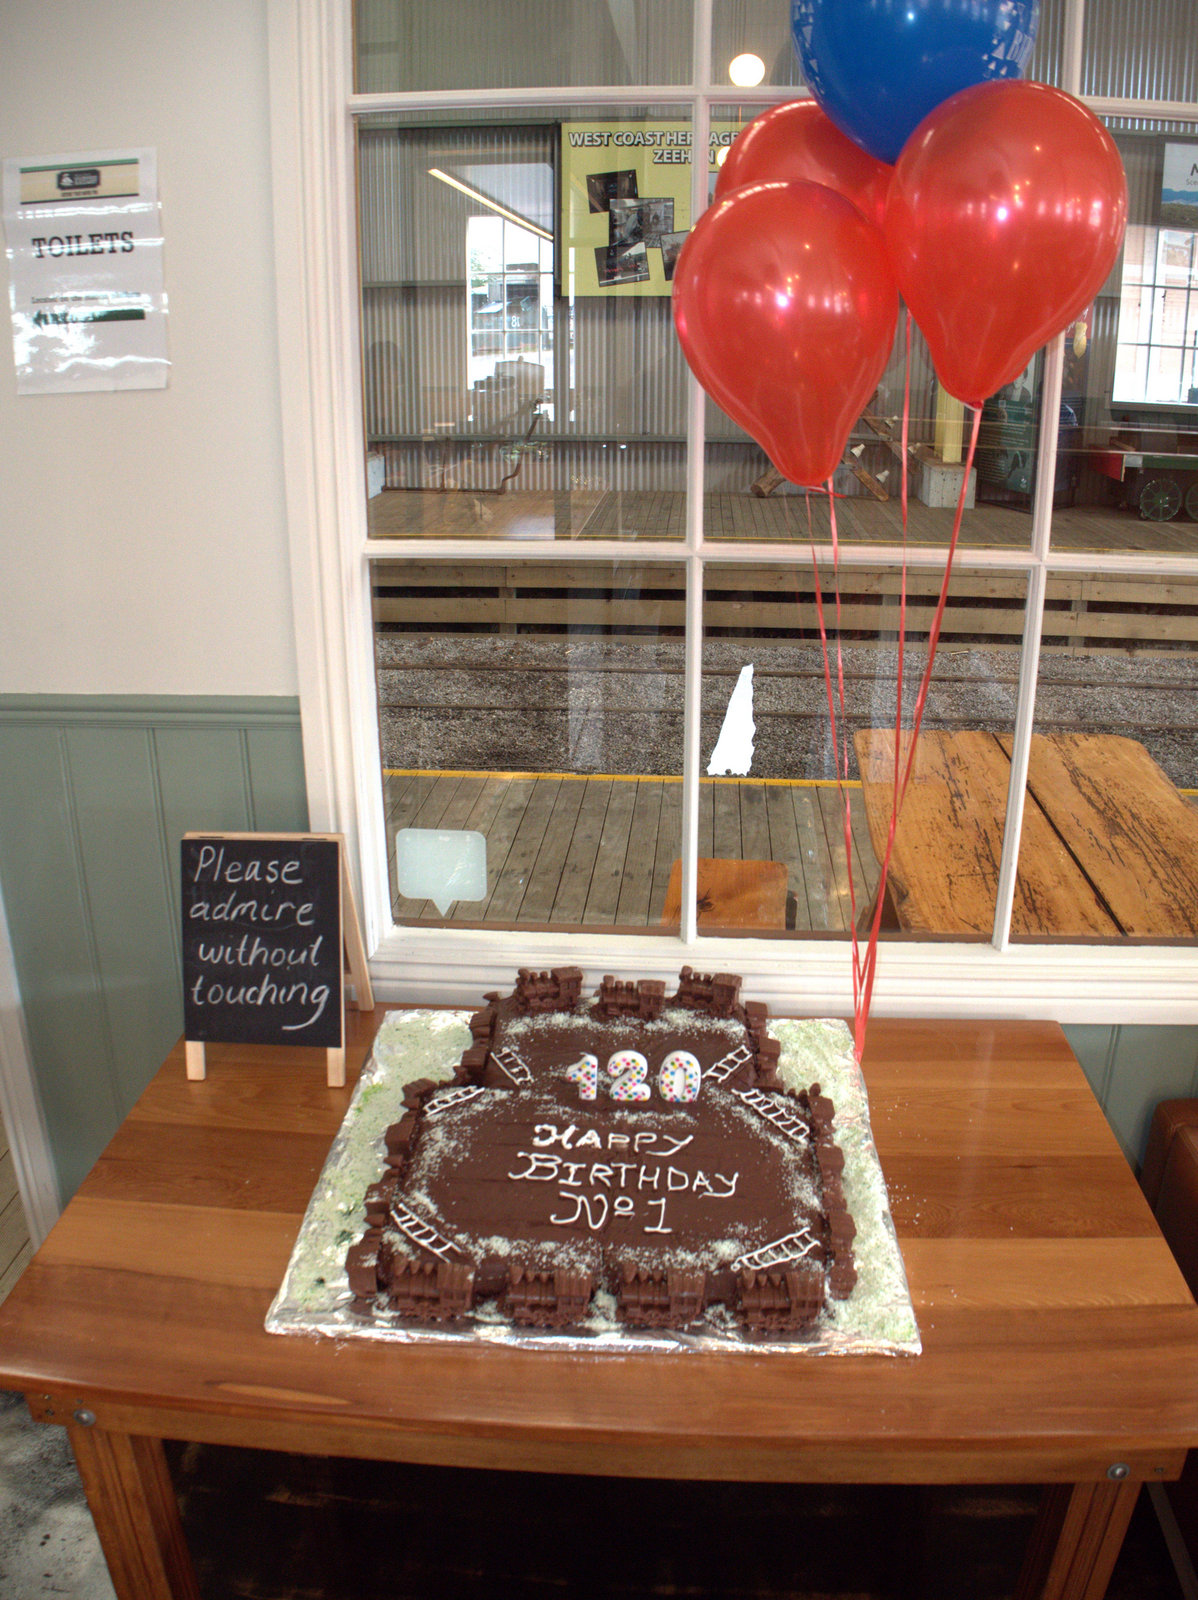 Loco No.1's birthday cake was made by the team at Tracks Cafe in Queenstown